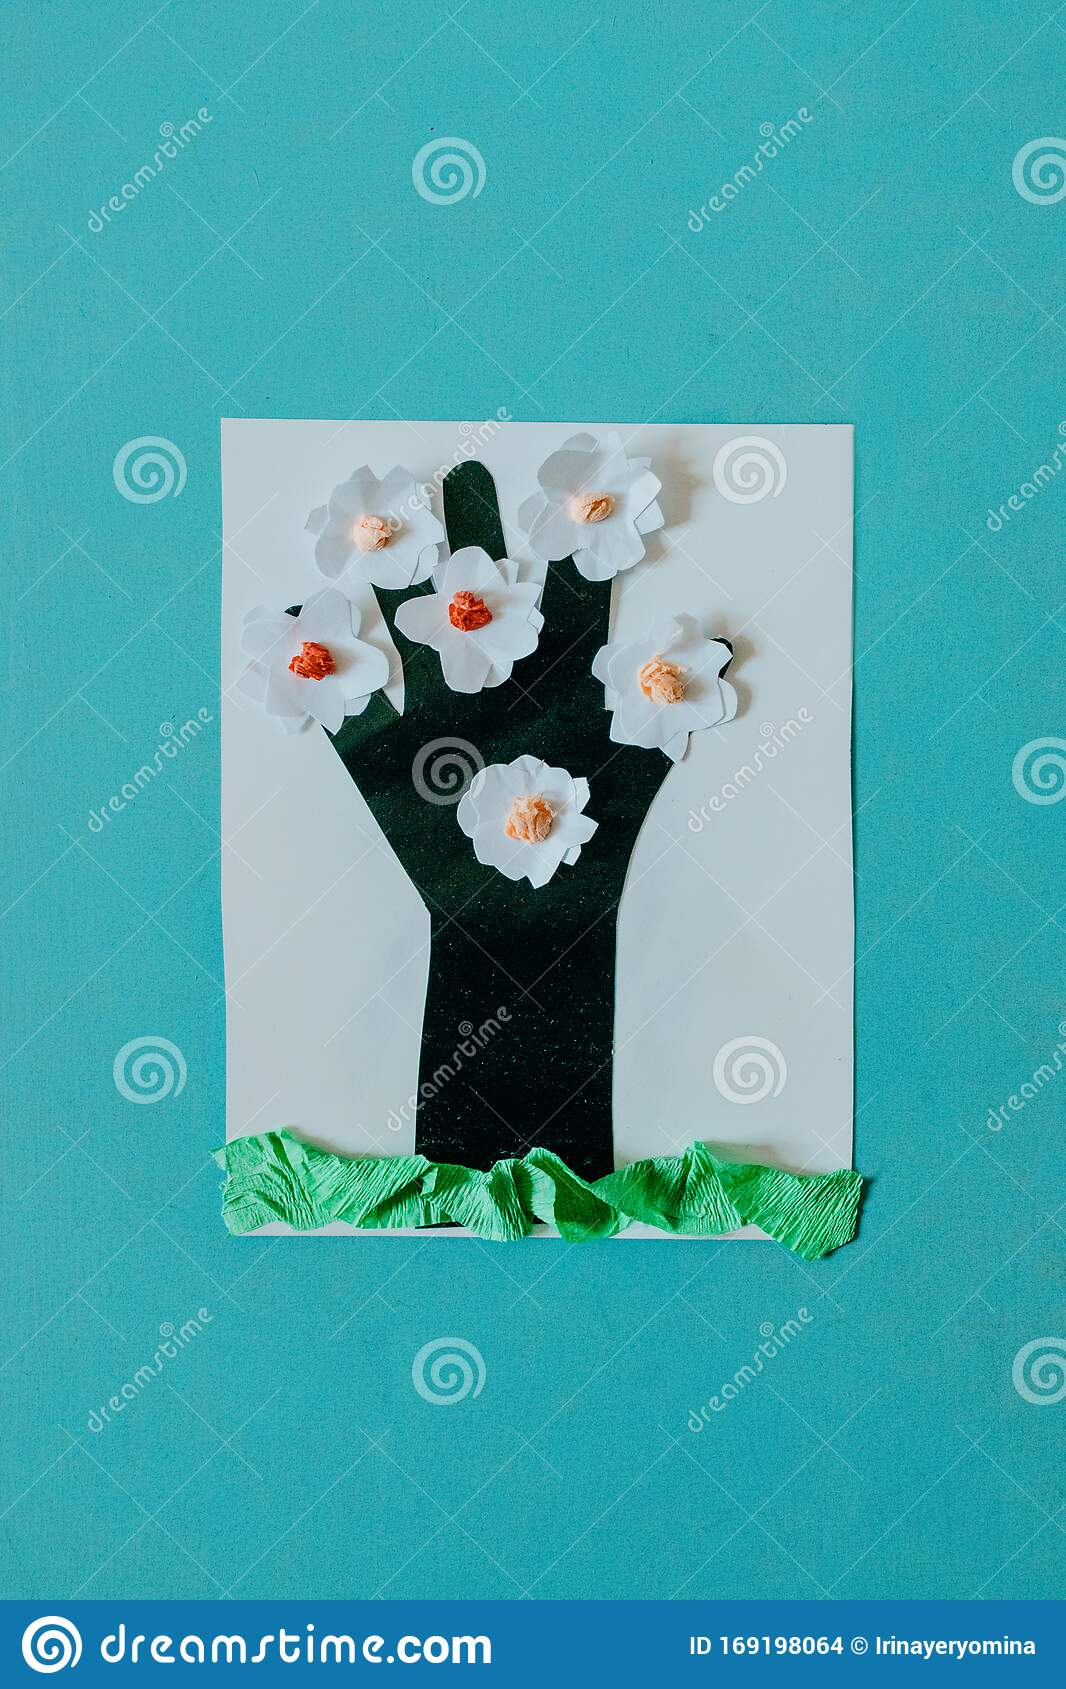 Spring Summer Diy Kid Paper Craft Ideas Preschool Activities Easy Crafts Ideas Creative Paper Projects For Kids Fun Stock Photo Image Of Collage Colored 169198064